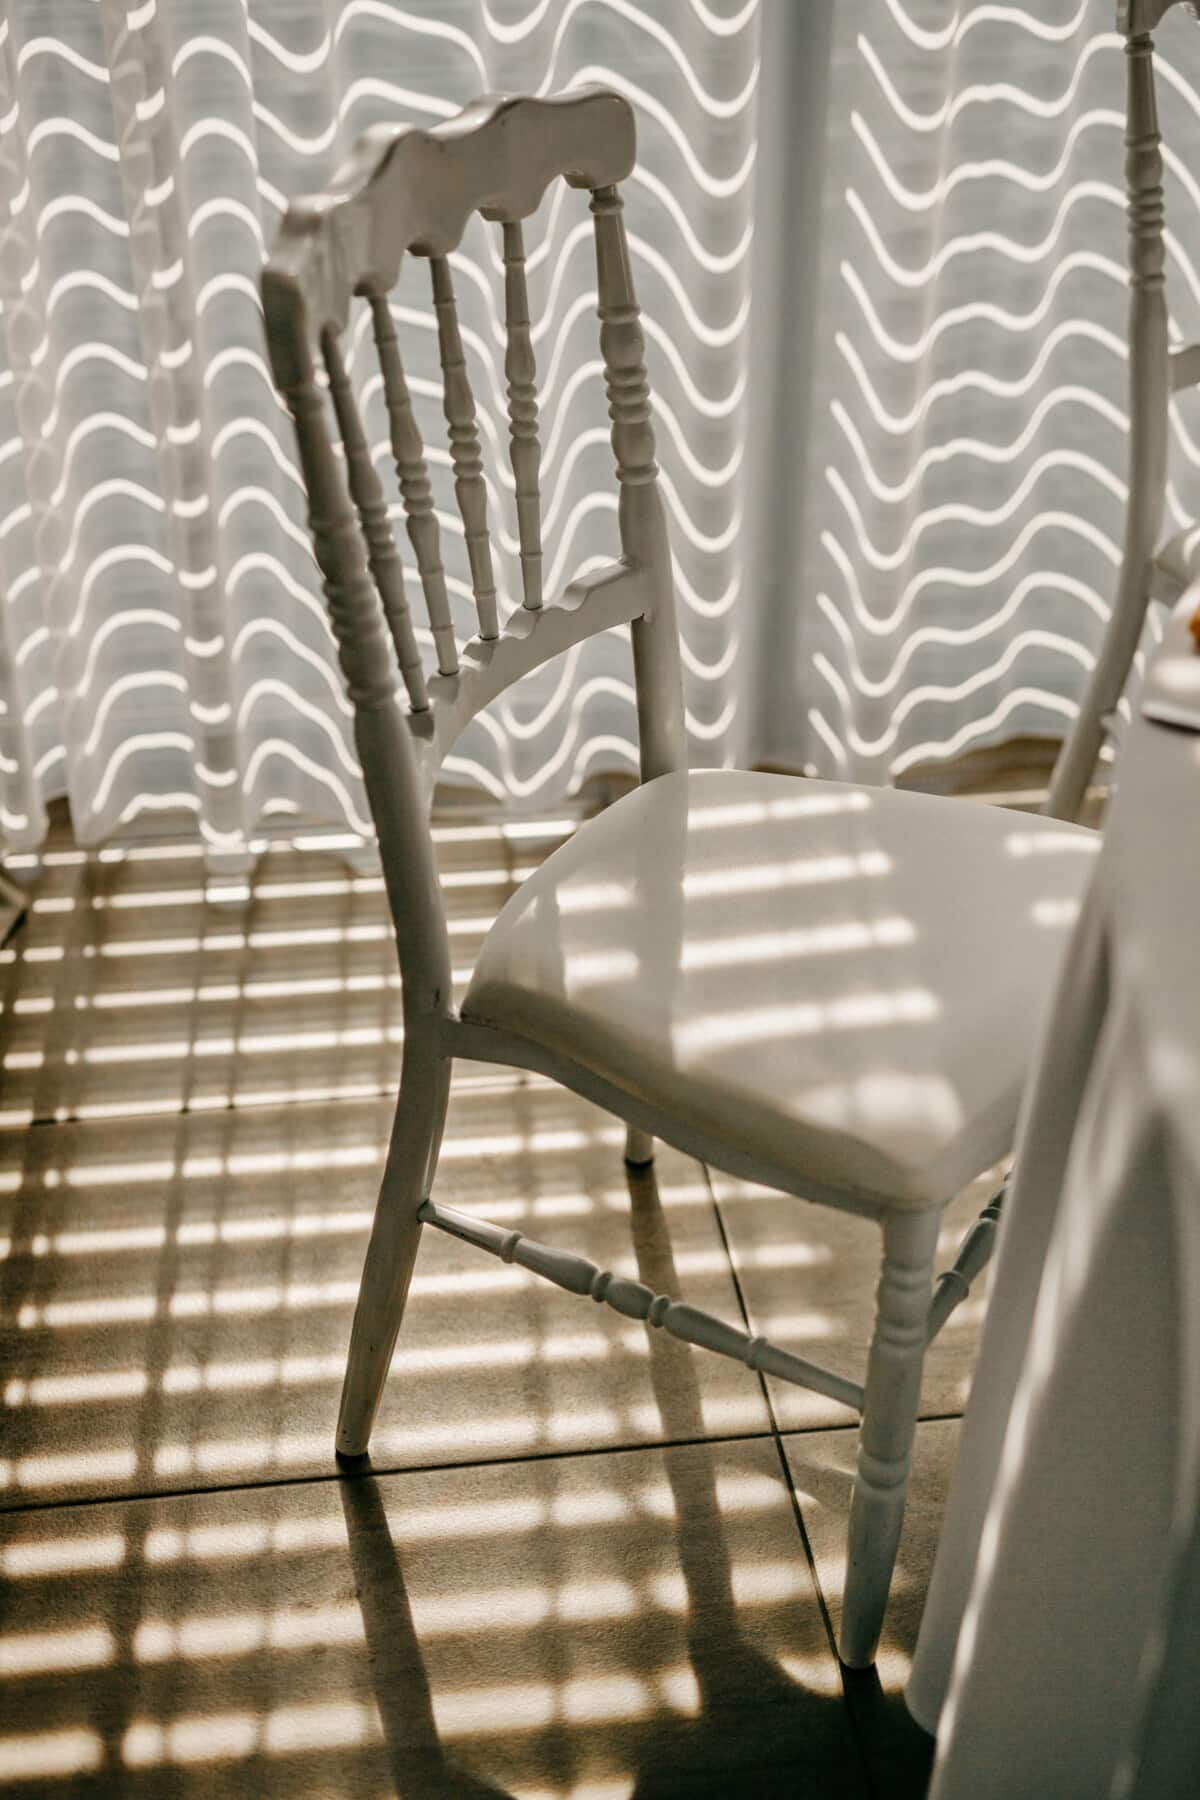 white, chair, old, vintage, seat, window, indoors, design, empty, light